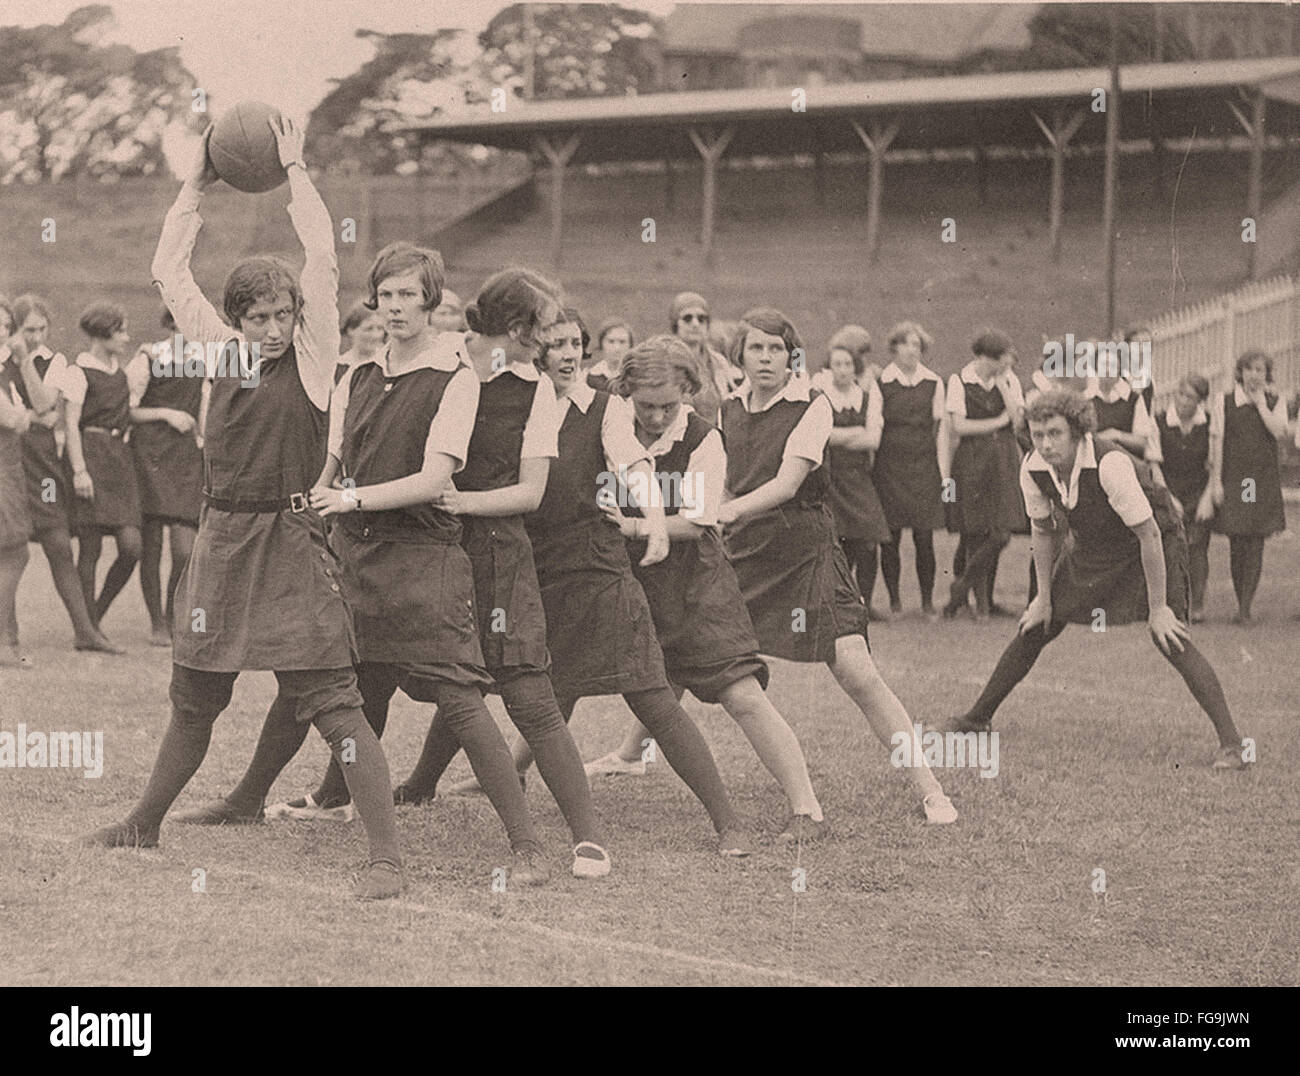 School tunnel ball - Sydney University      - 1930 - Stock Image